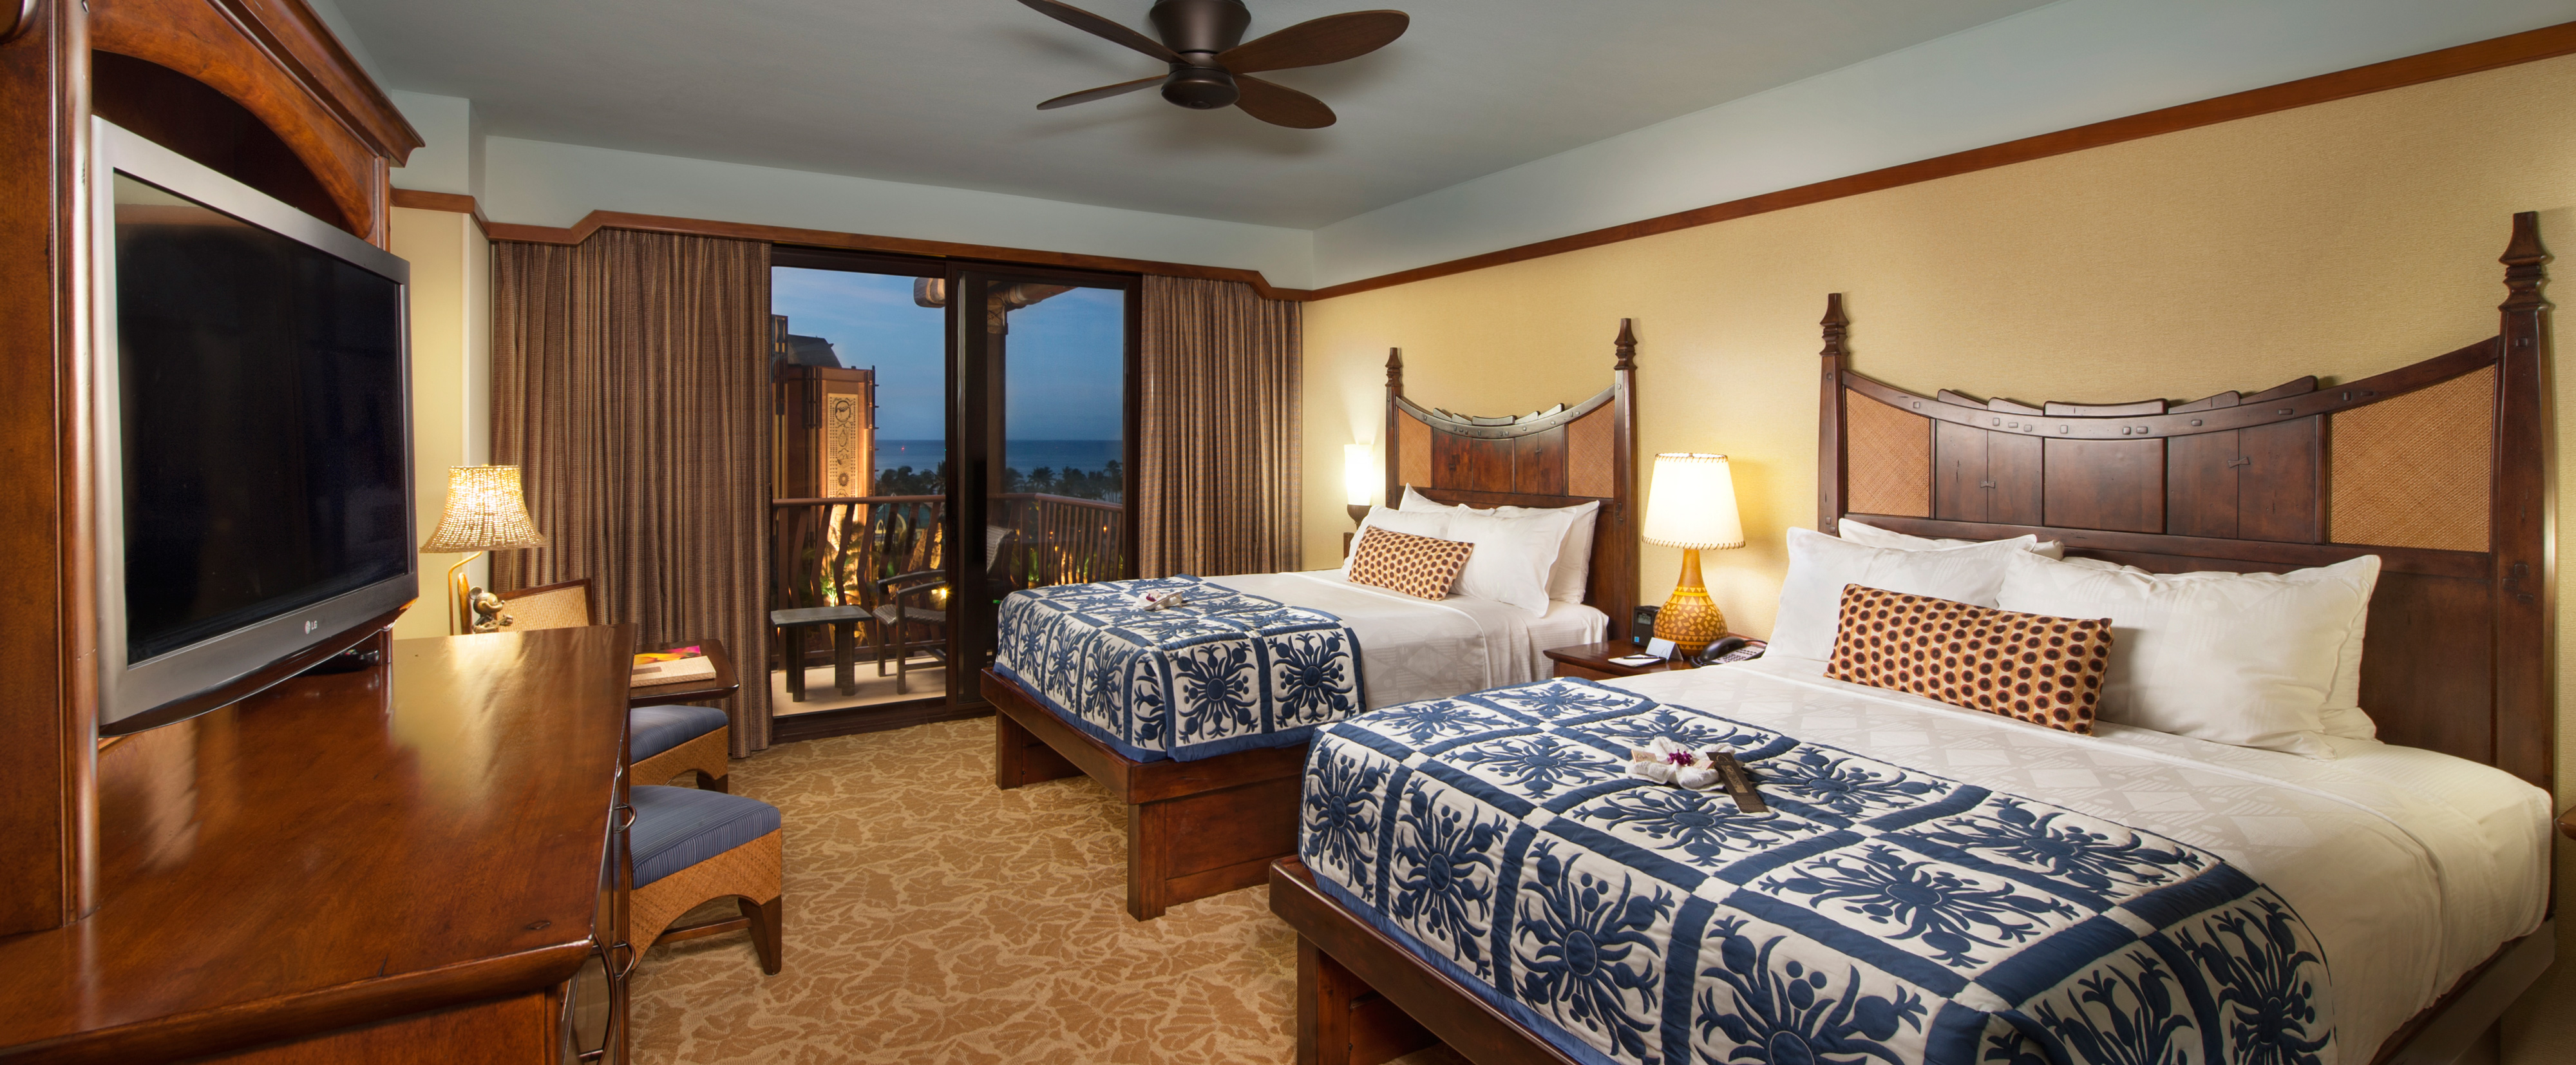 ... A standard room at Aulani with 2 queen beds ...